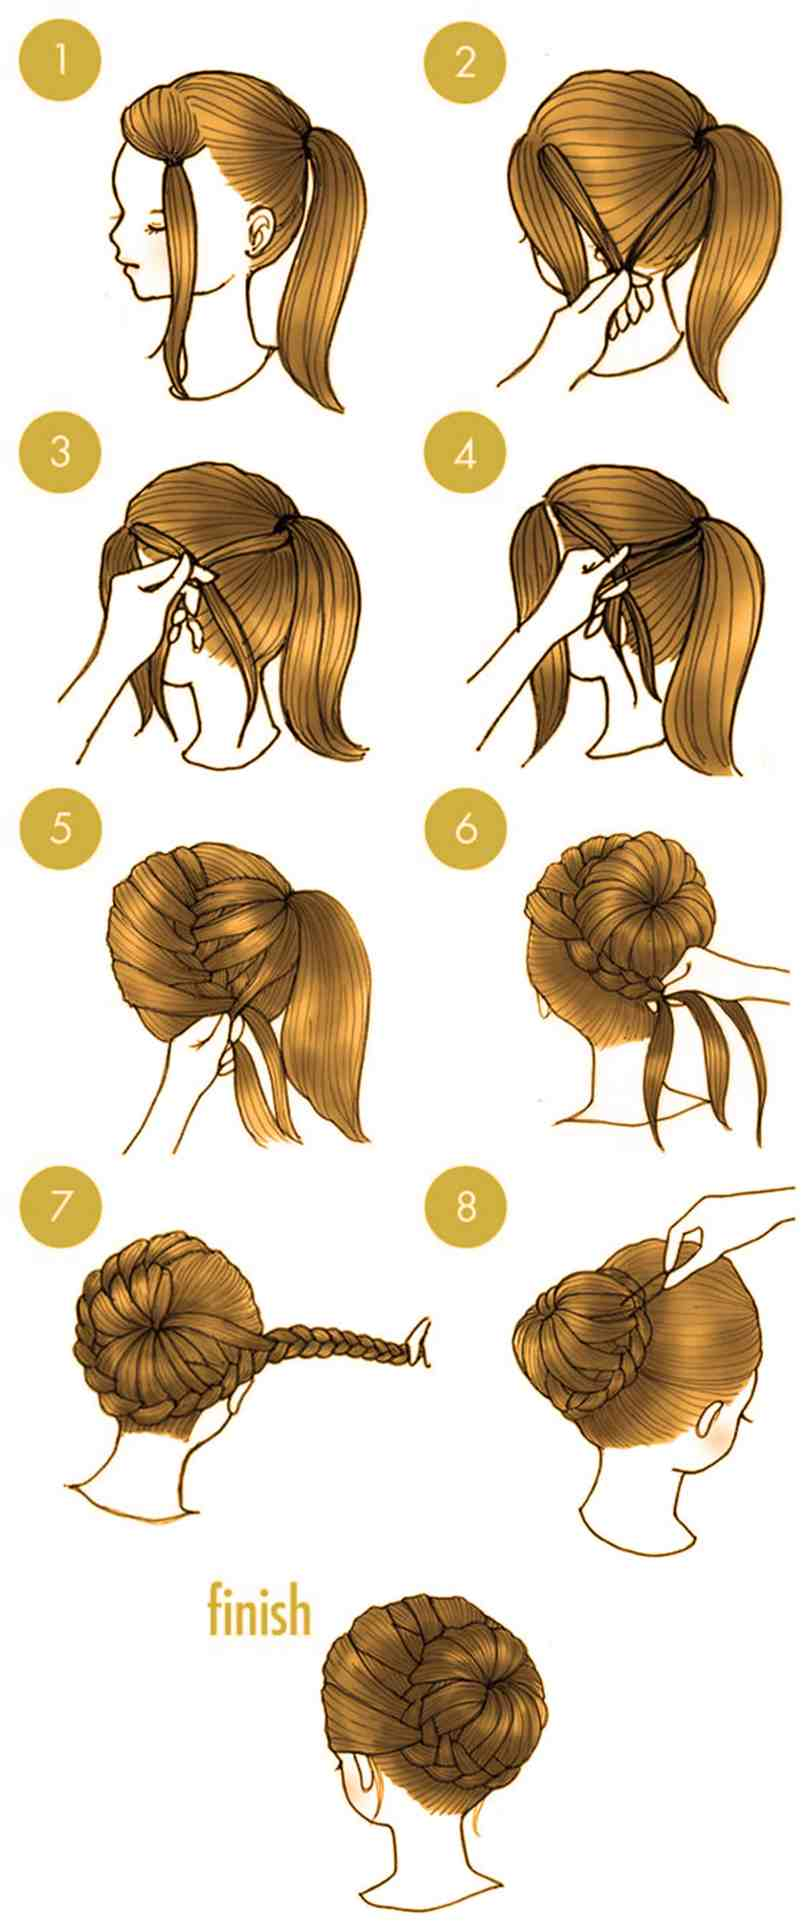 10 Quick Cute Hairstyles That Take Only 2 Minutes Of Your Time 11